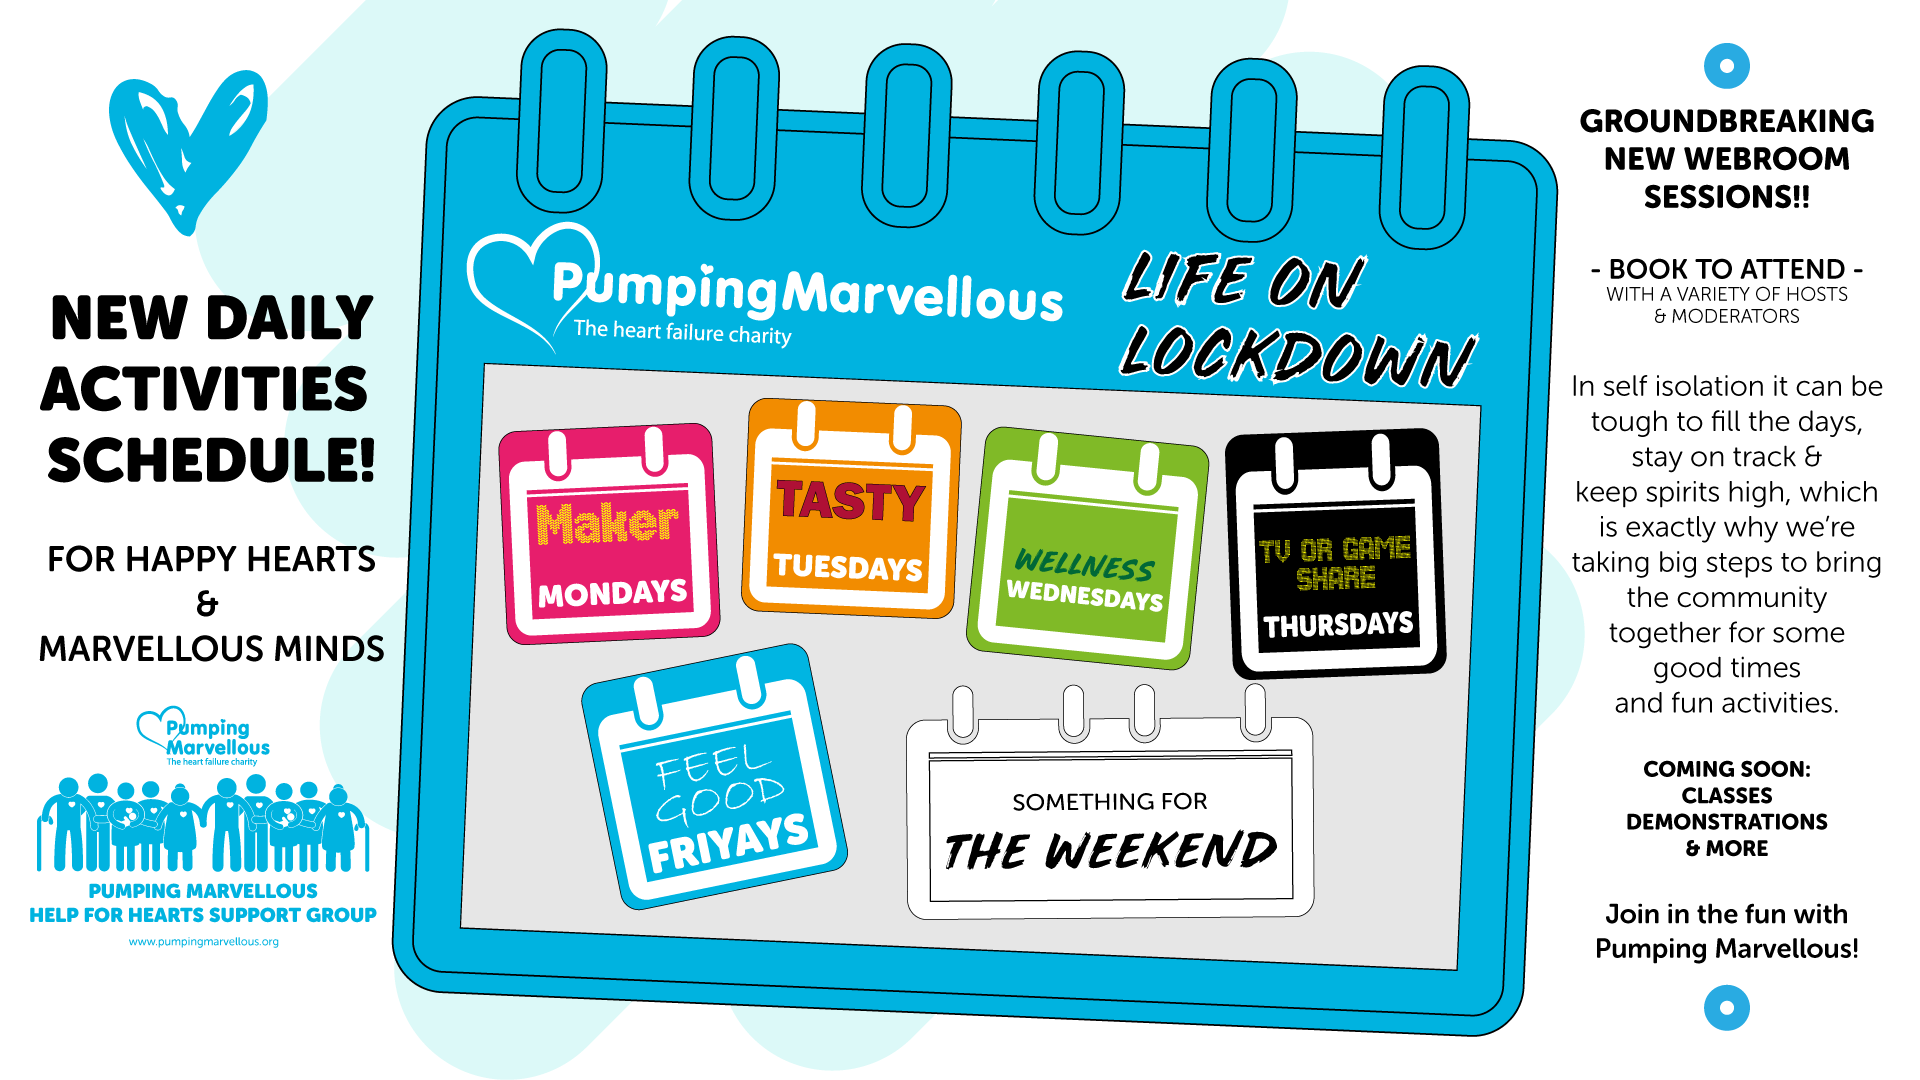 Life on Lockdown with Pumping Marvellous